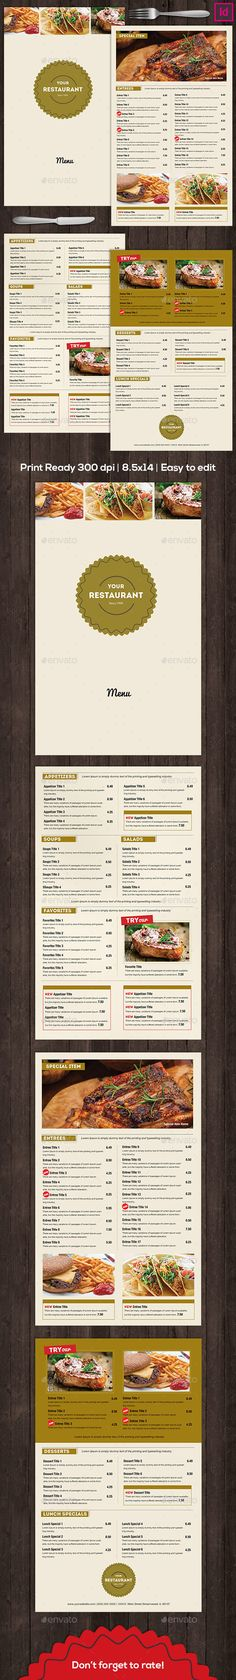 Best Restaurant Food Menu Templates  Psd  Indesign